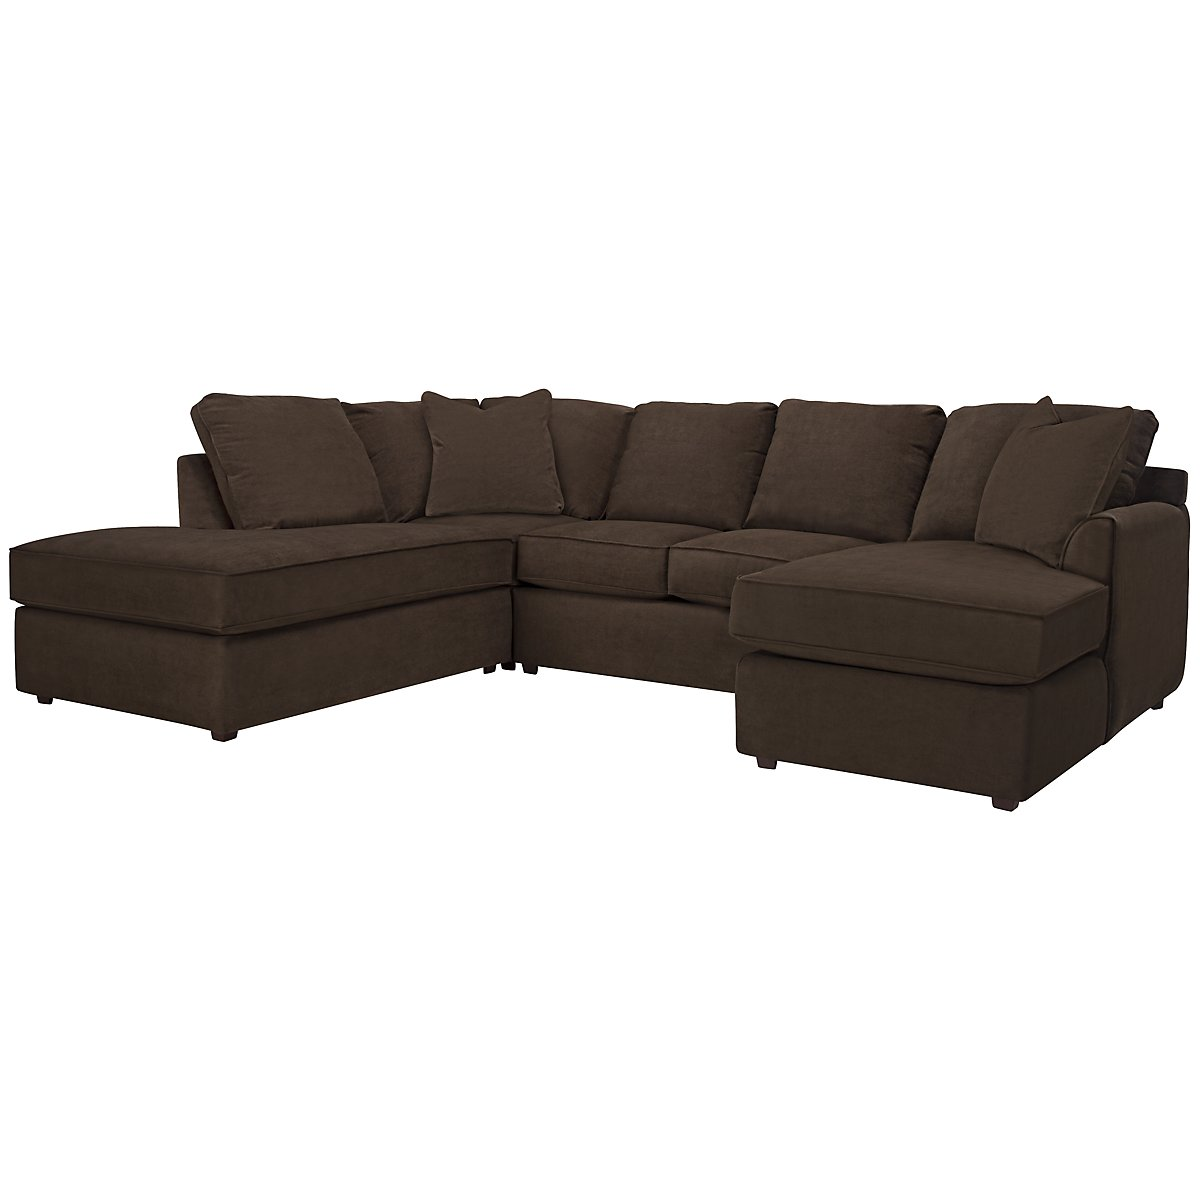 Express3 Dark Brown Microfiber Small Left Bumper Sectional